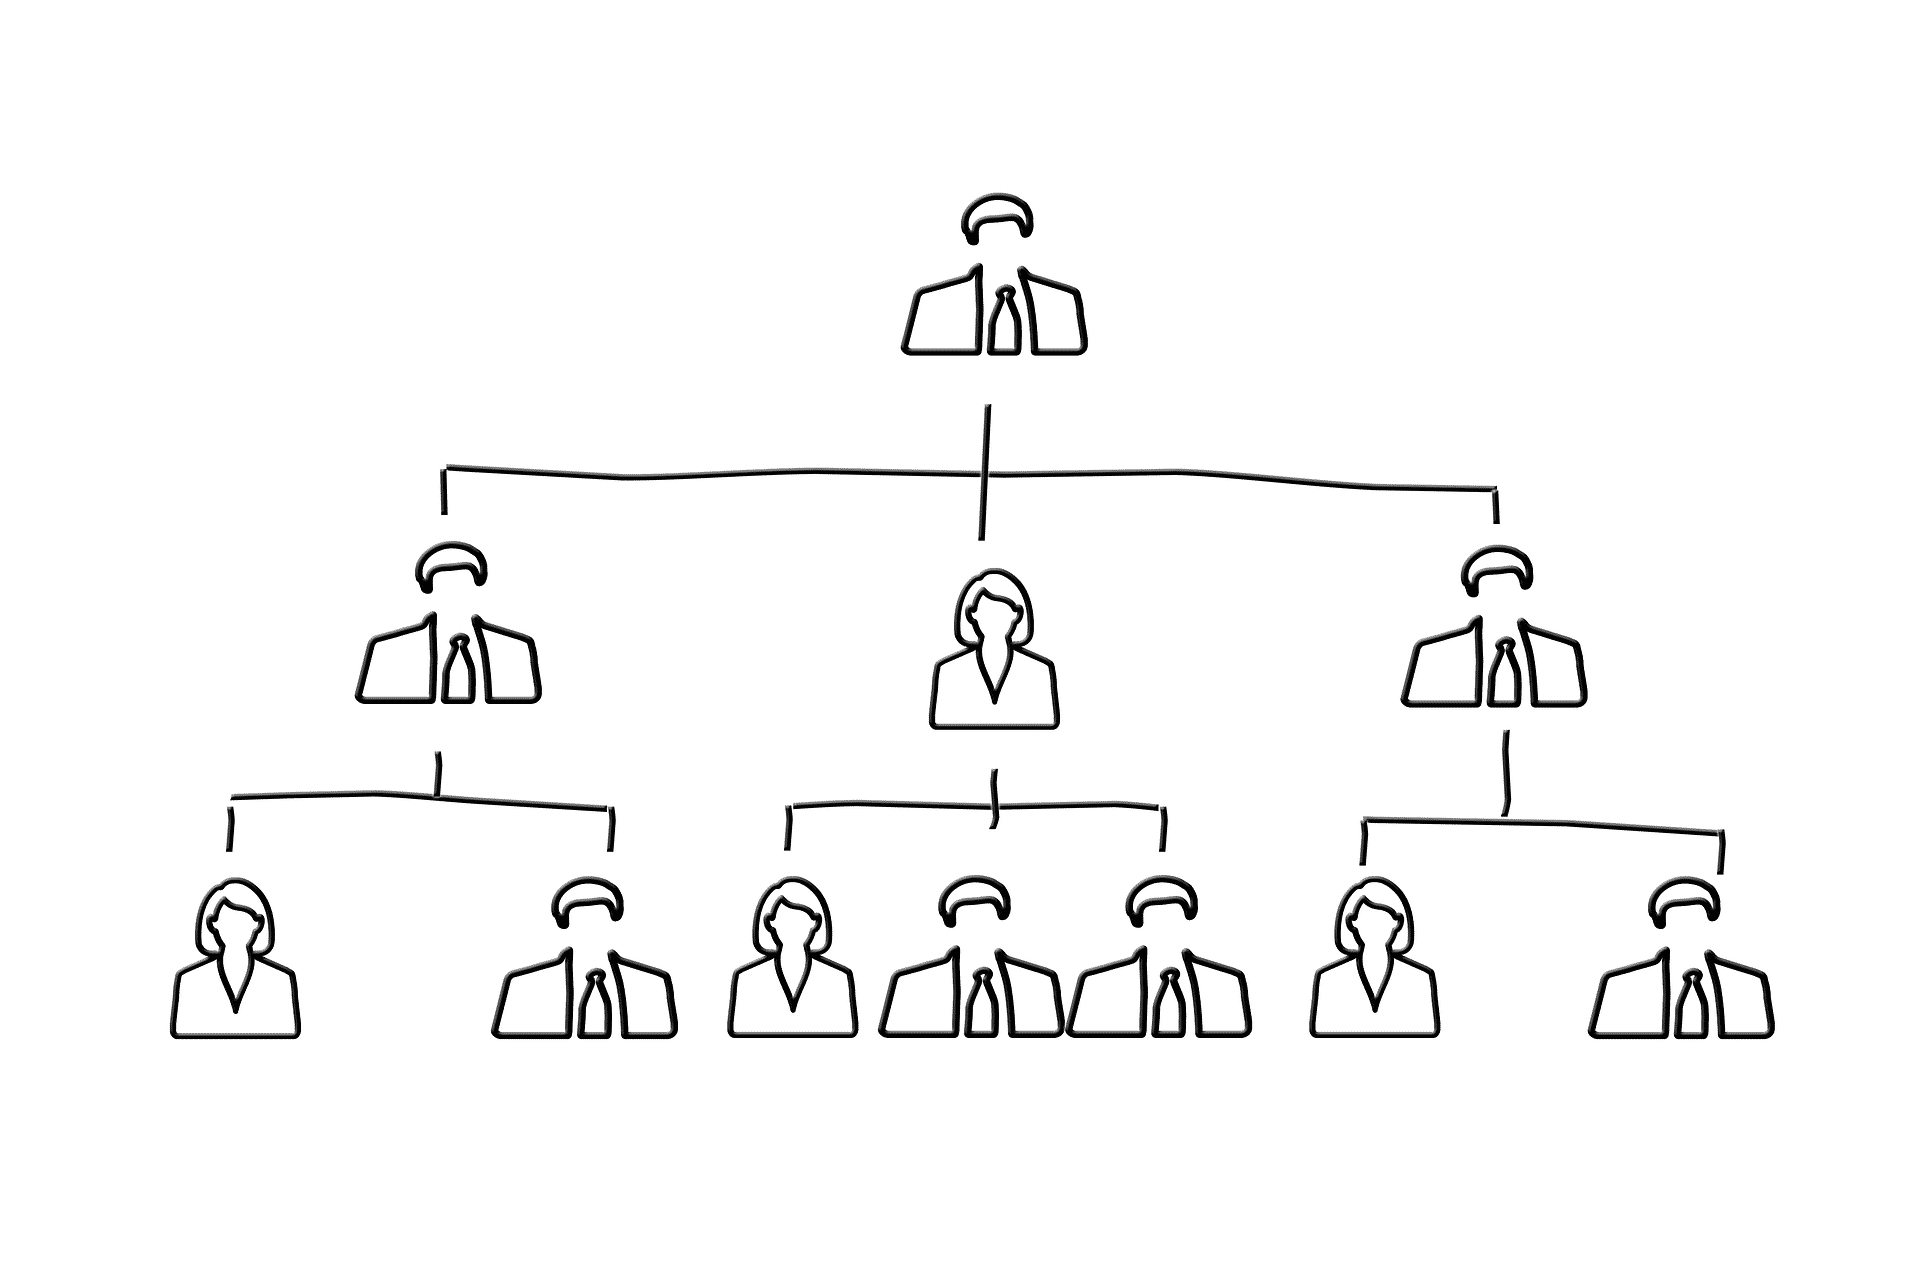 Different cultures have different attitudes to organisational structure